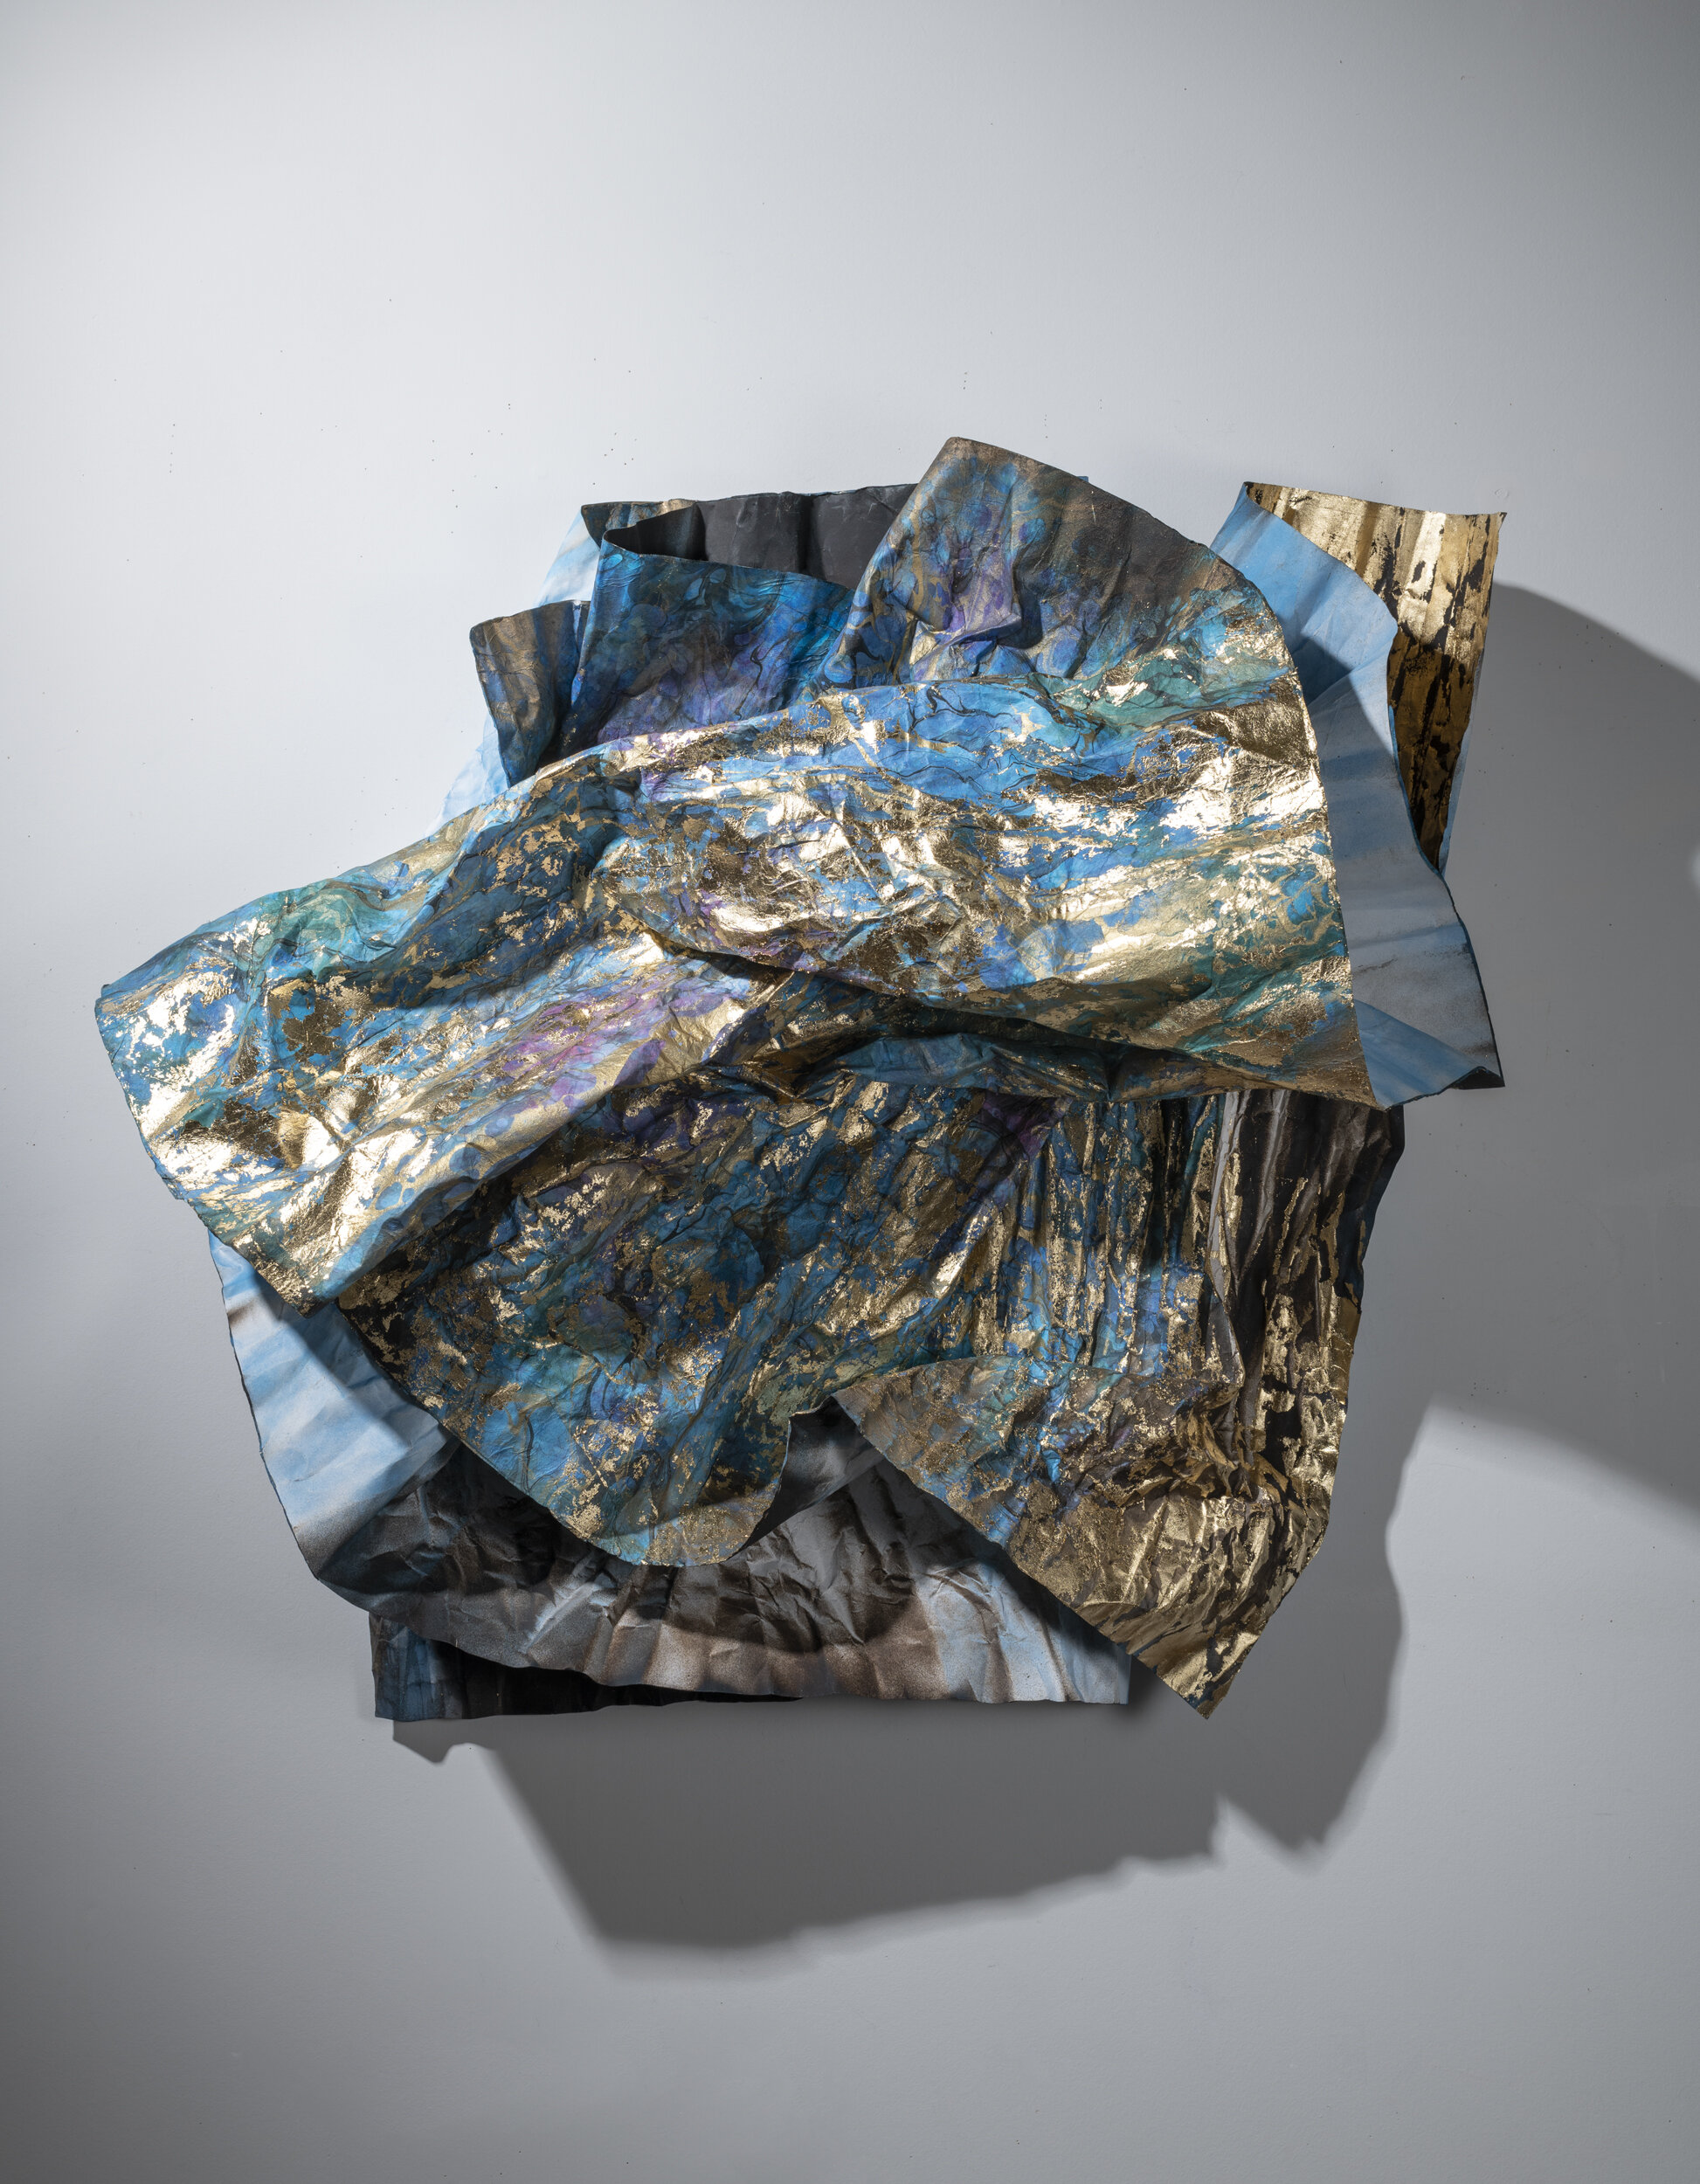 Damaged Emergency Blanket (for the Black and Blue Atlantic),  2018, 42 x 158 1⁄4 inches (with variable installation dimensions), composition gold leaf, acrylic spray paint and marbled paper collage on distressed paper